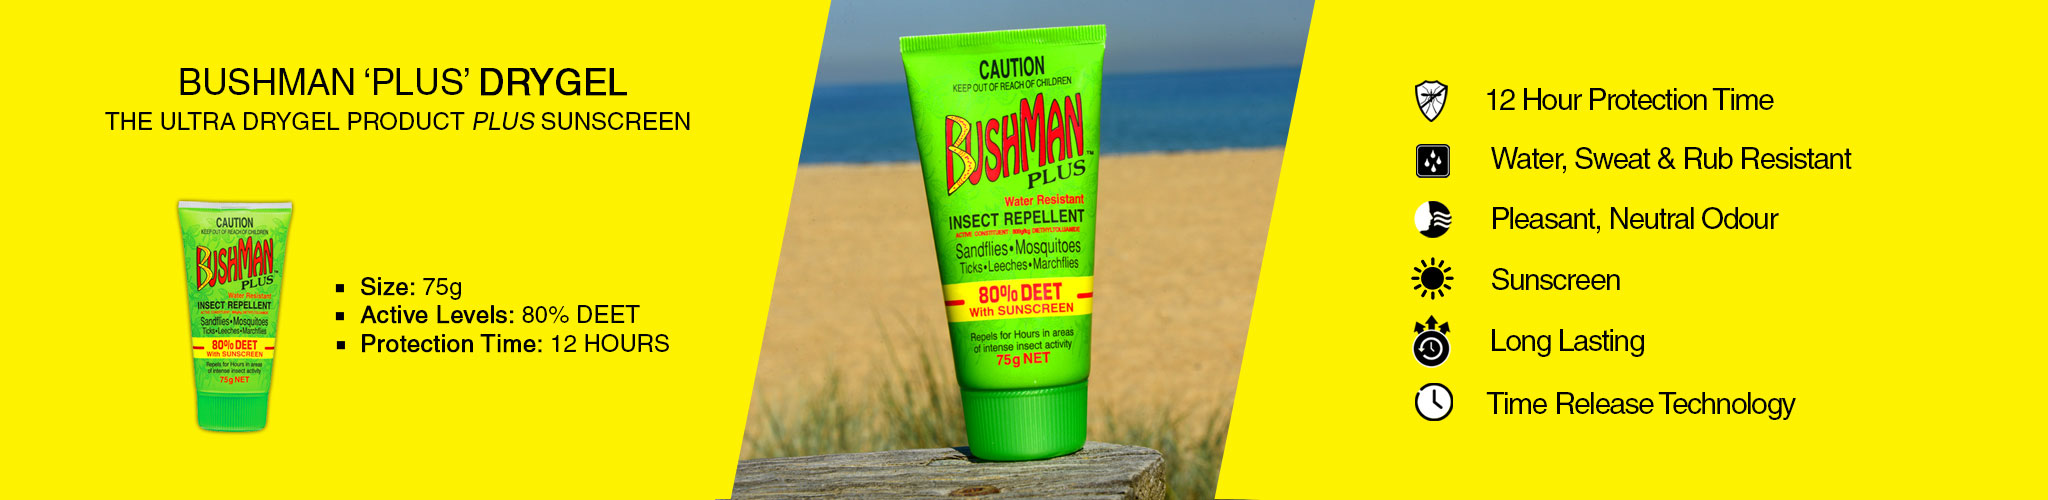 Bushman plus dry gel